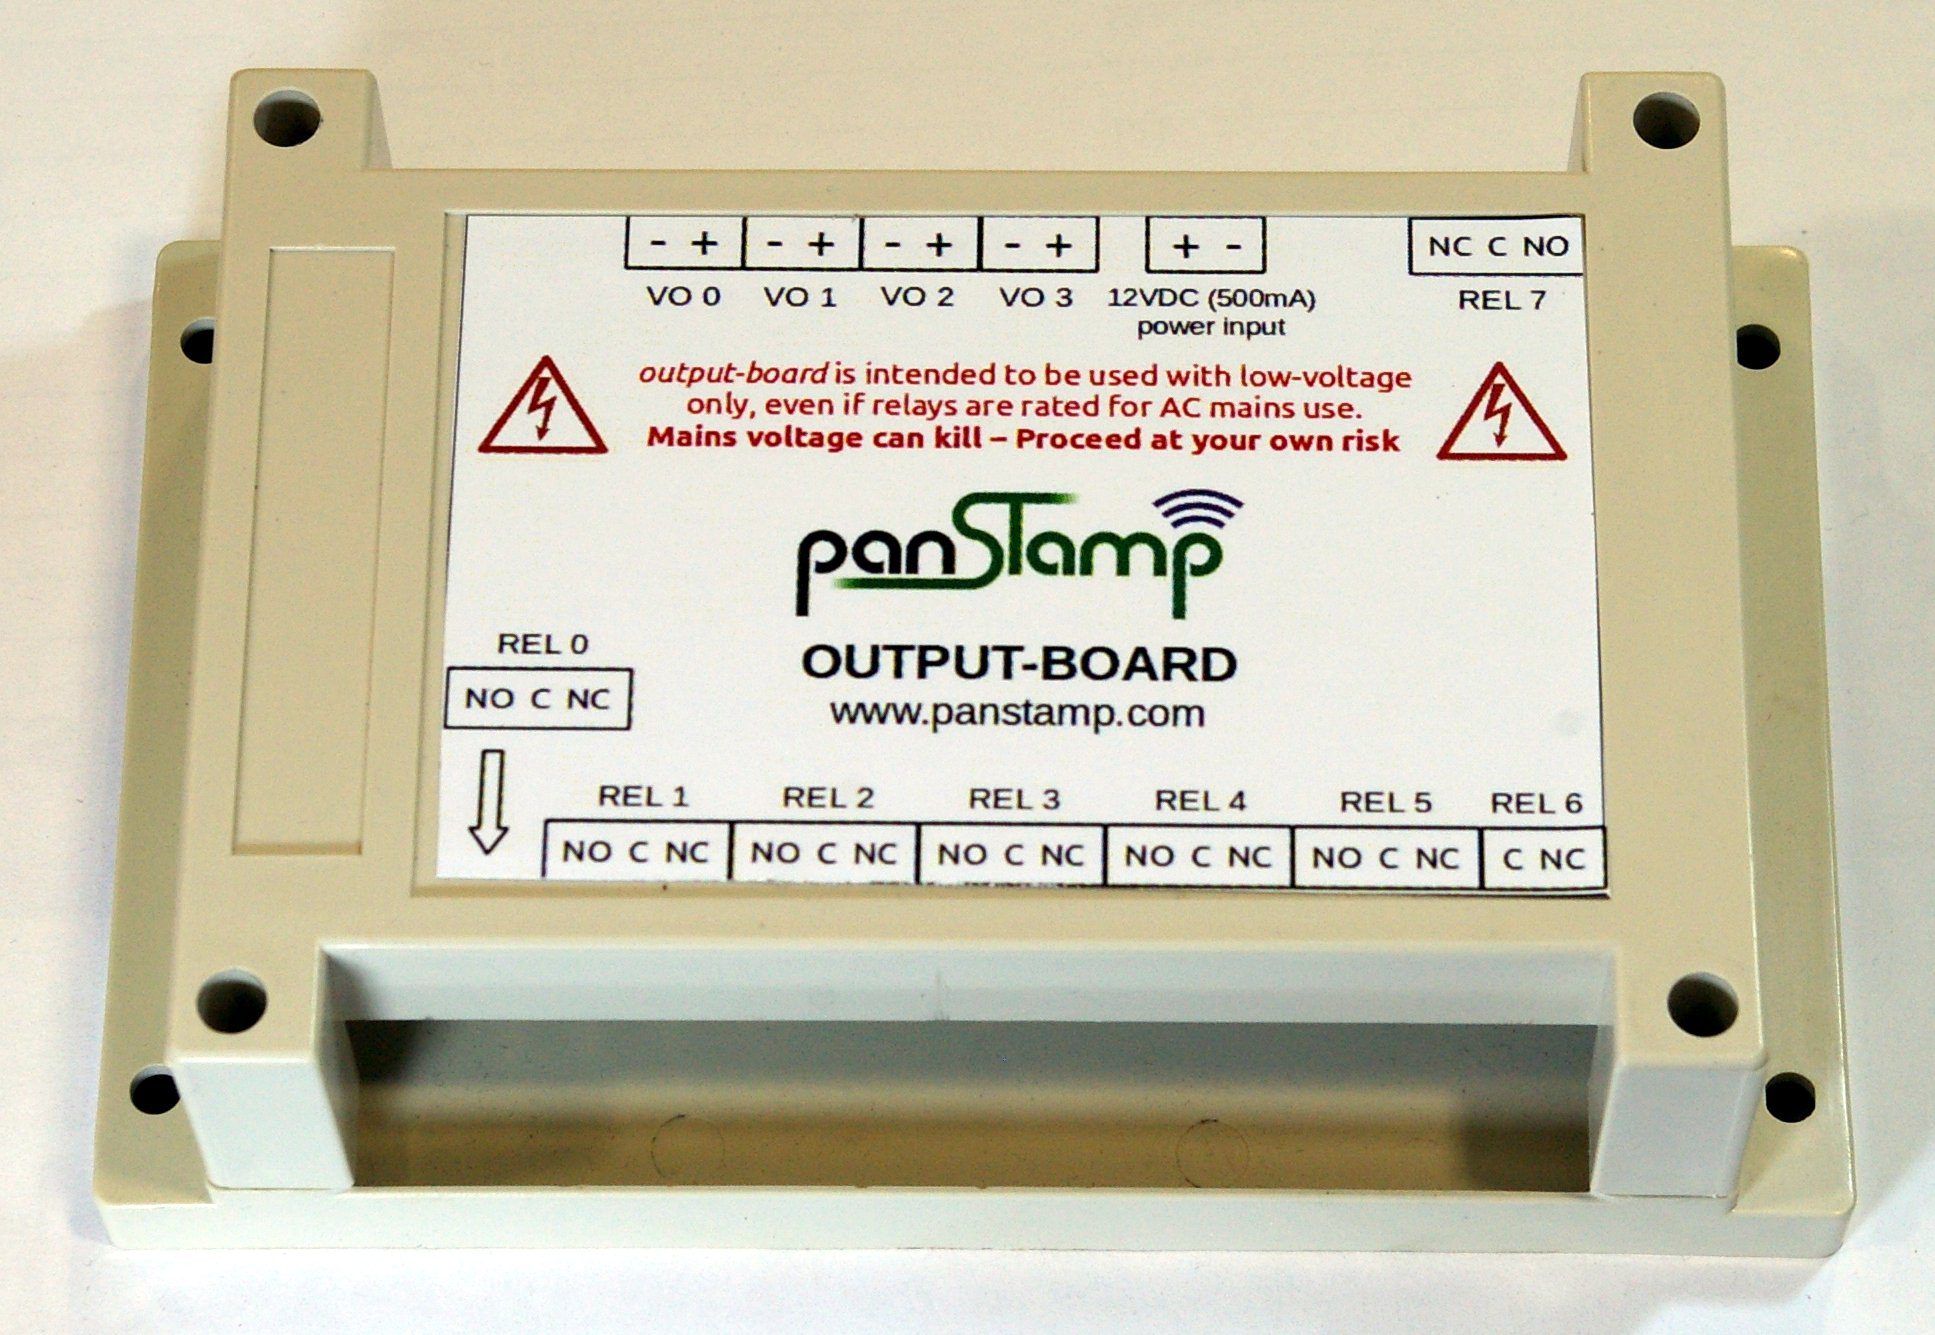 output-board